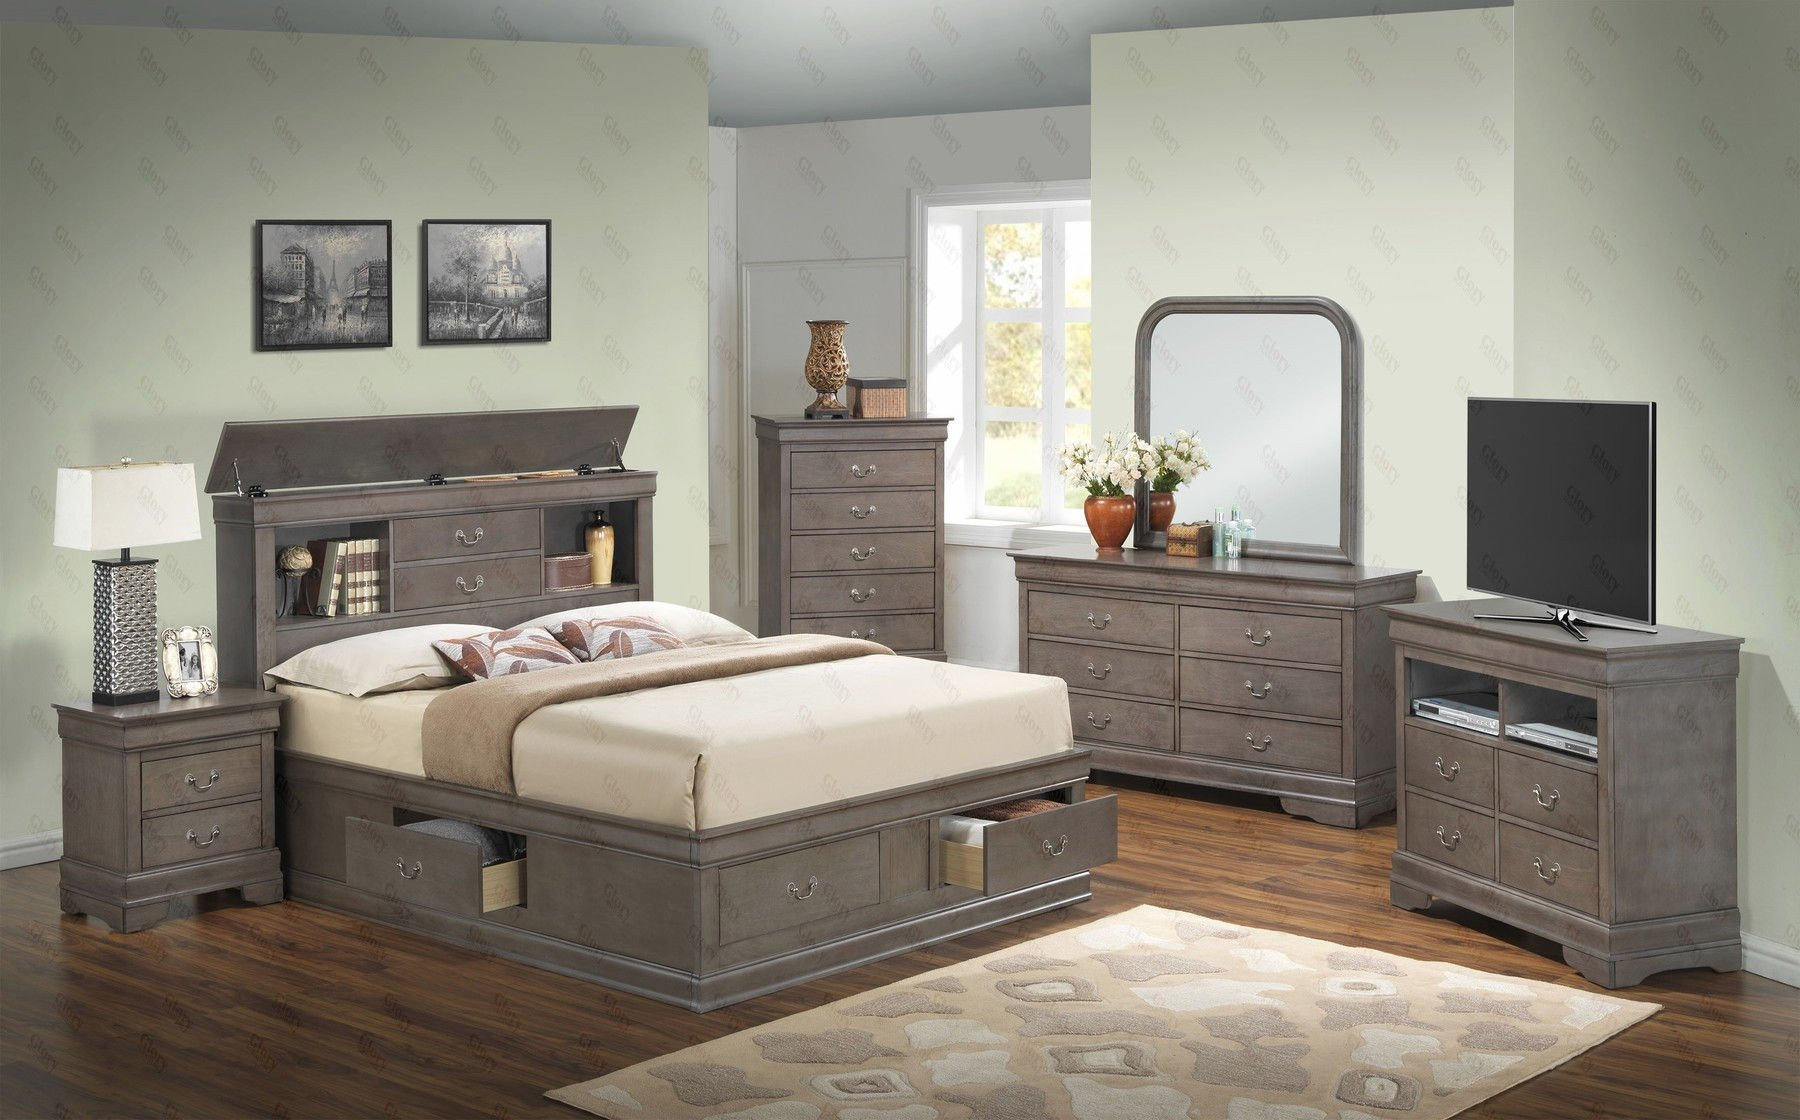 Bedroom Set with Mattress Included New Louis Philippe B Queen Set Gray Queen Size B 2ns Dr Mr Ch